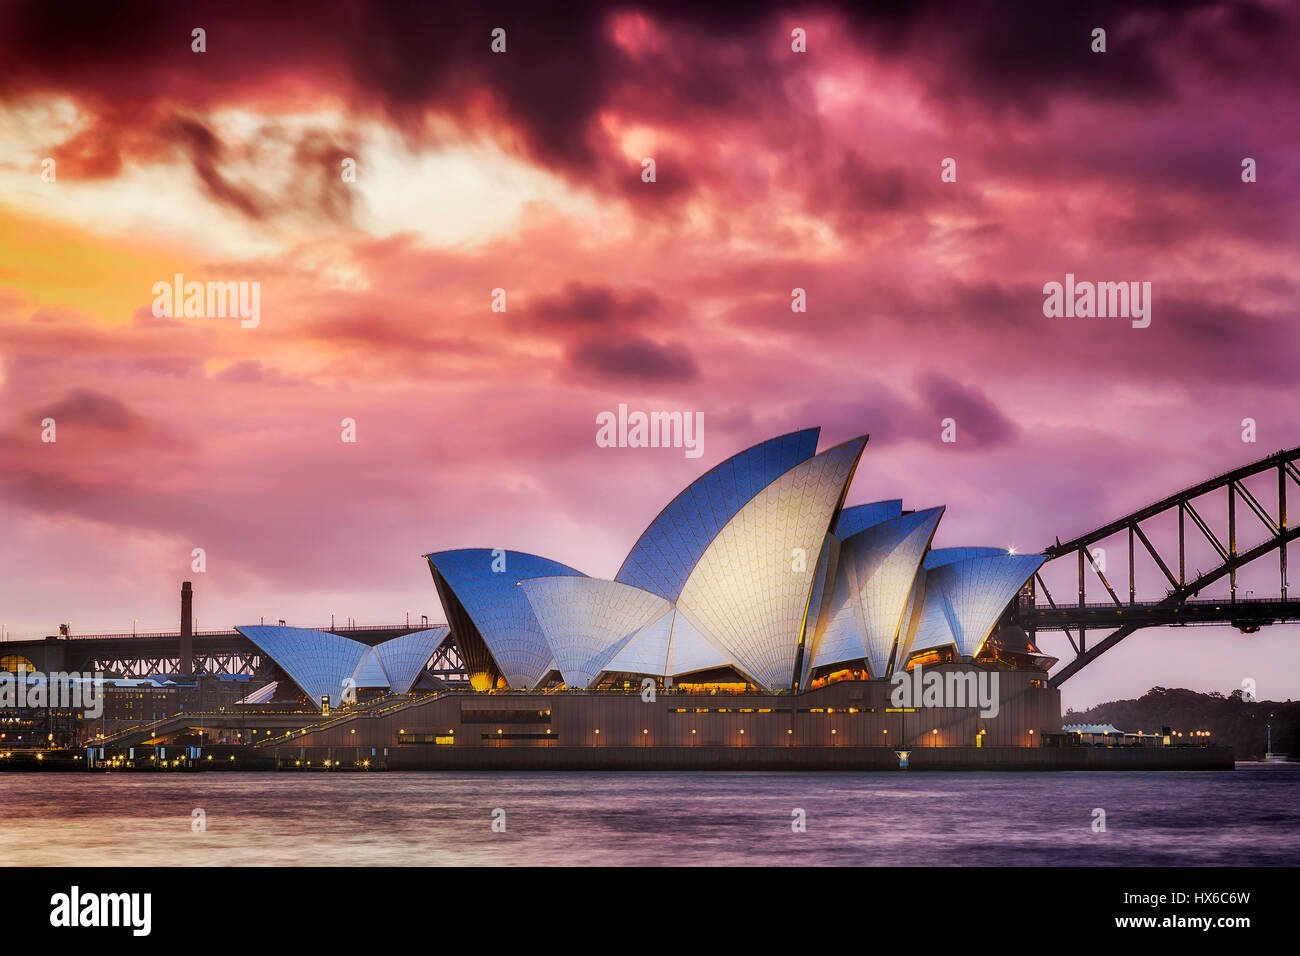 Sydney, Australia - 19 March 2017: Magical sunset over world famous landmark - Sydney Opera house and Harbour Bridge. - Stock Image